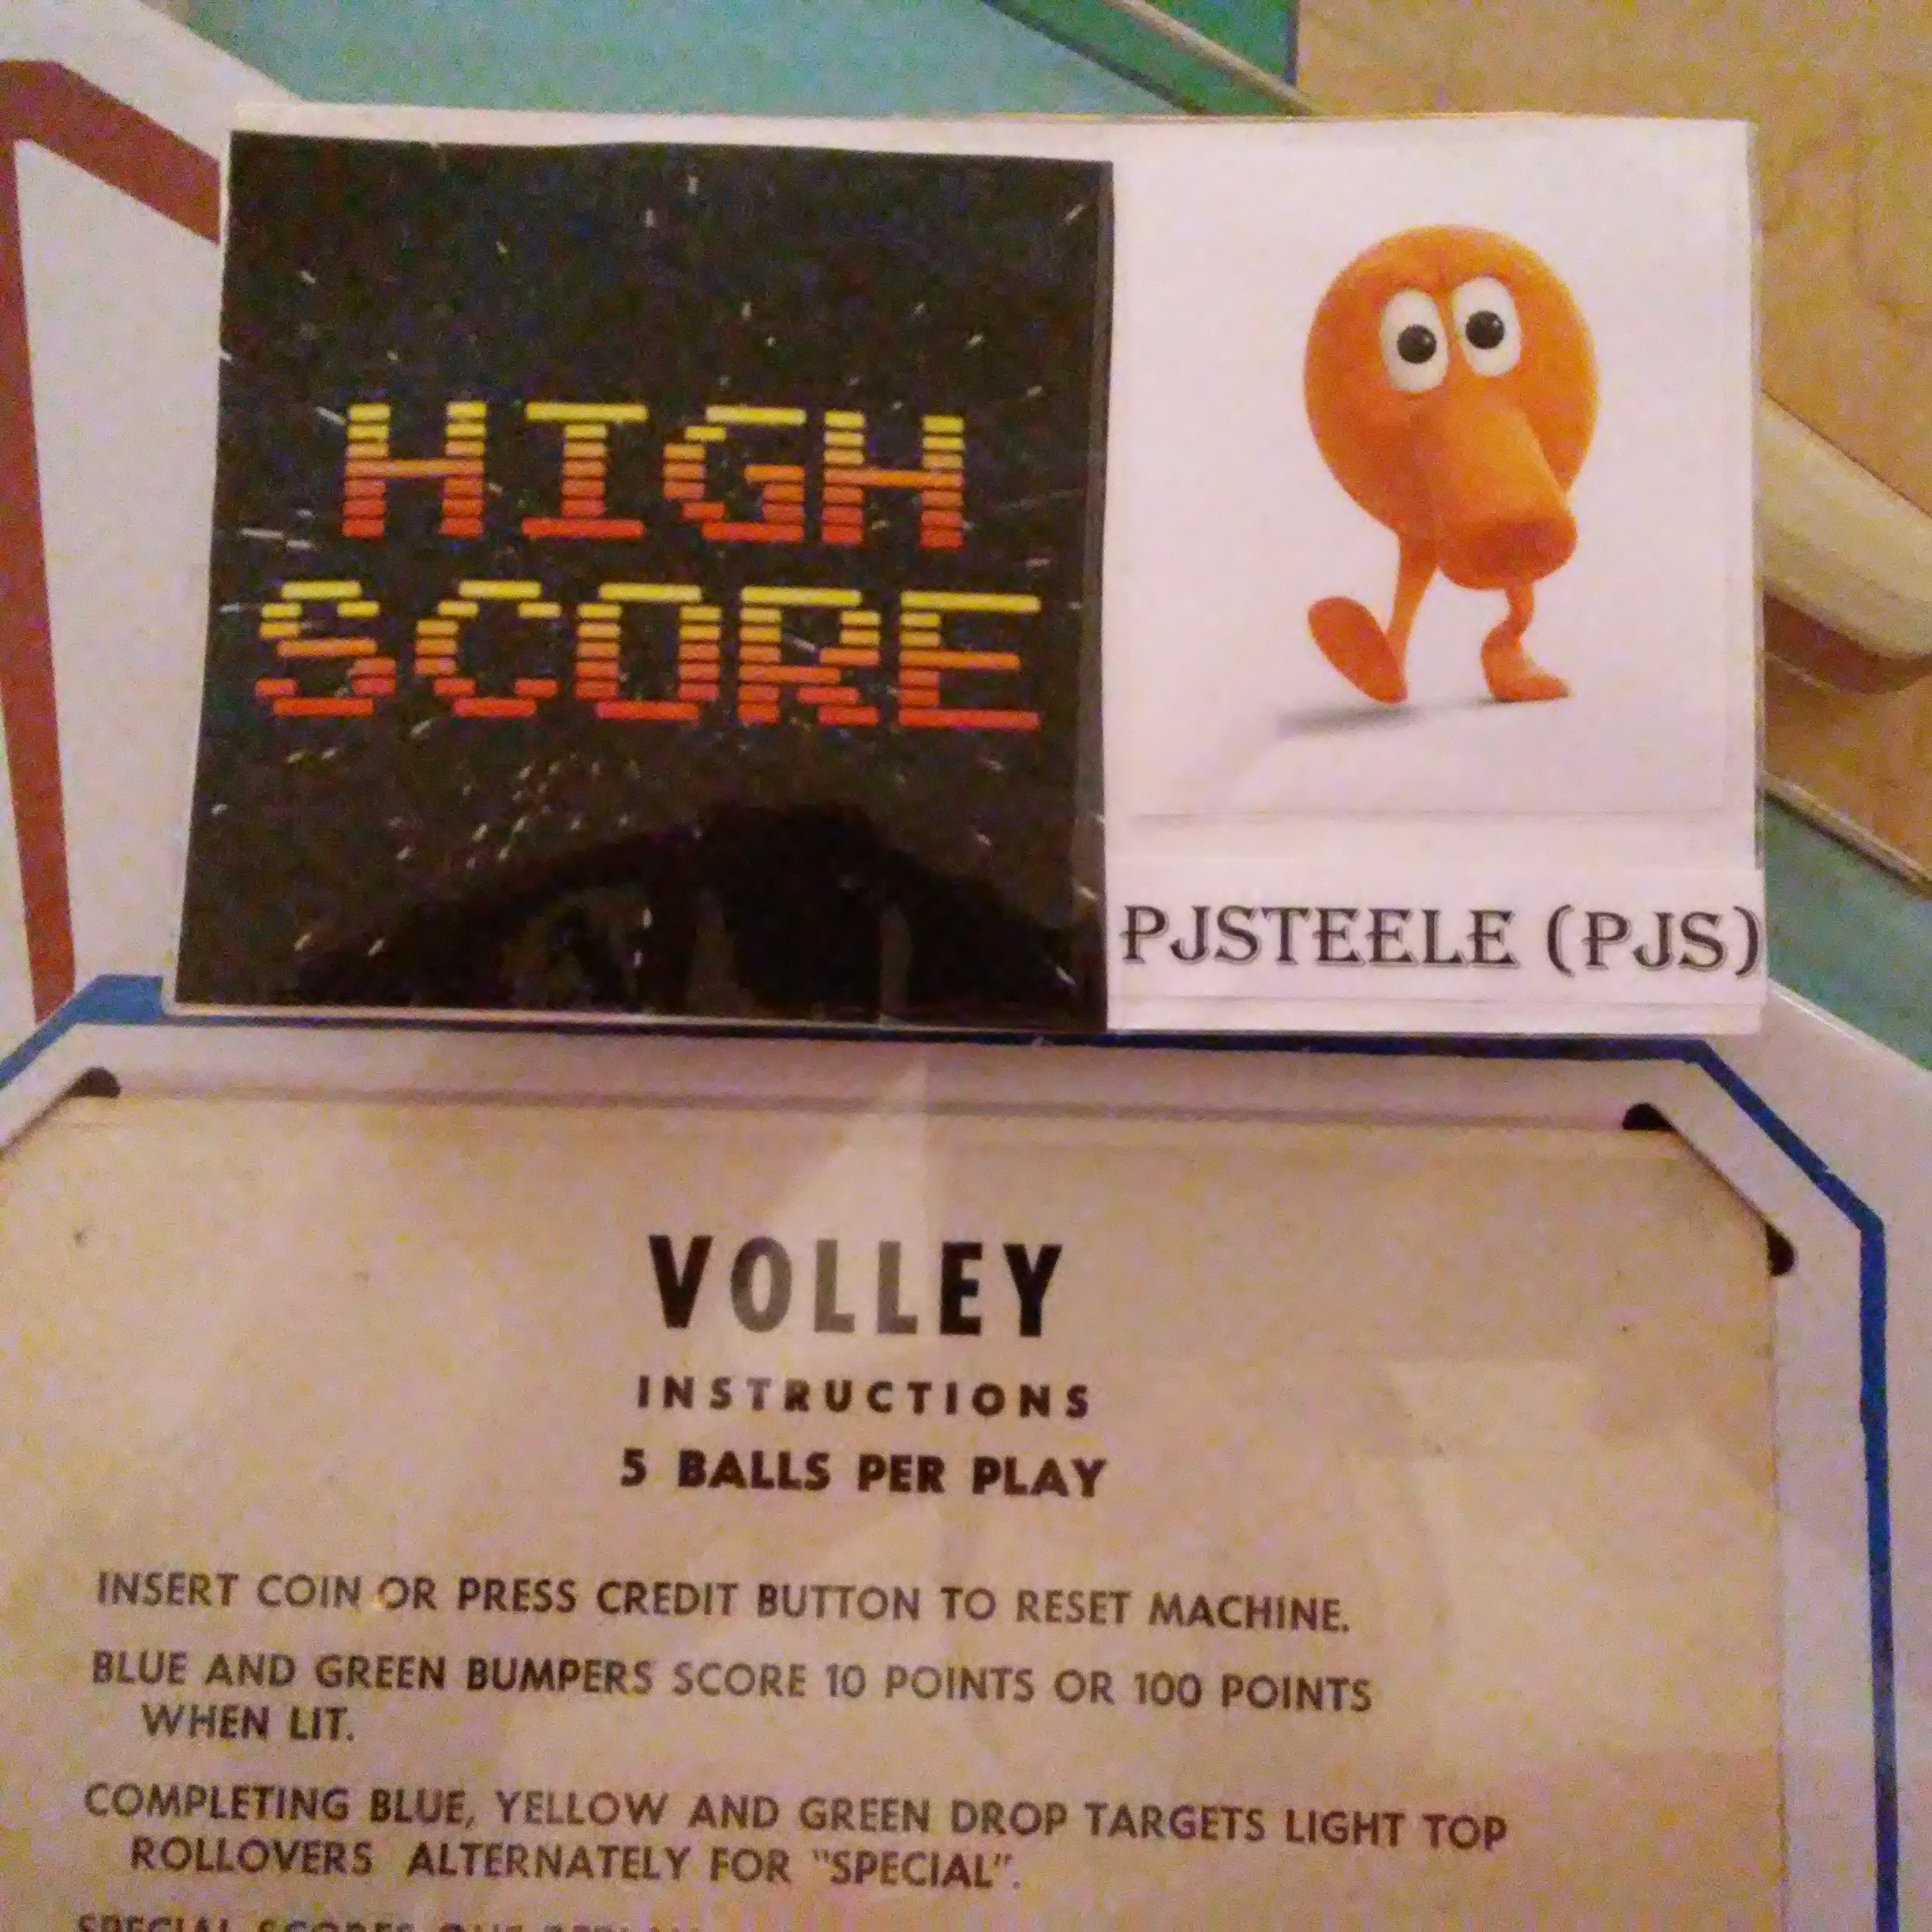 Pjsteele: Volley (Pinball: 5 Balls) 44,460 points on 2017-12-31 19:36:46